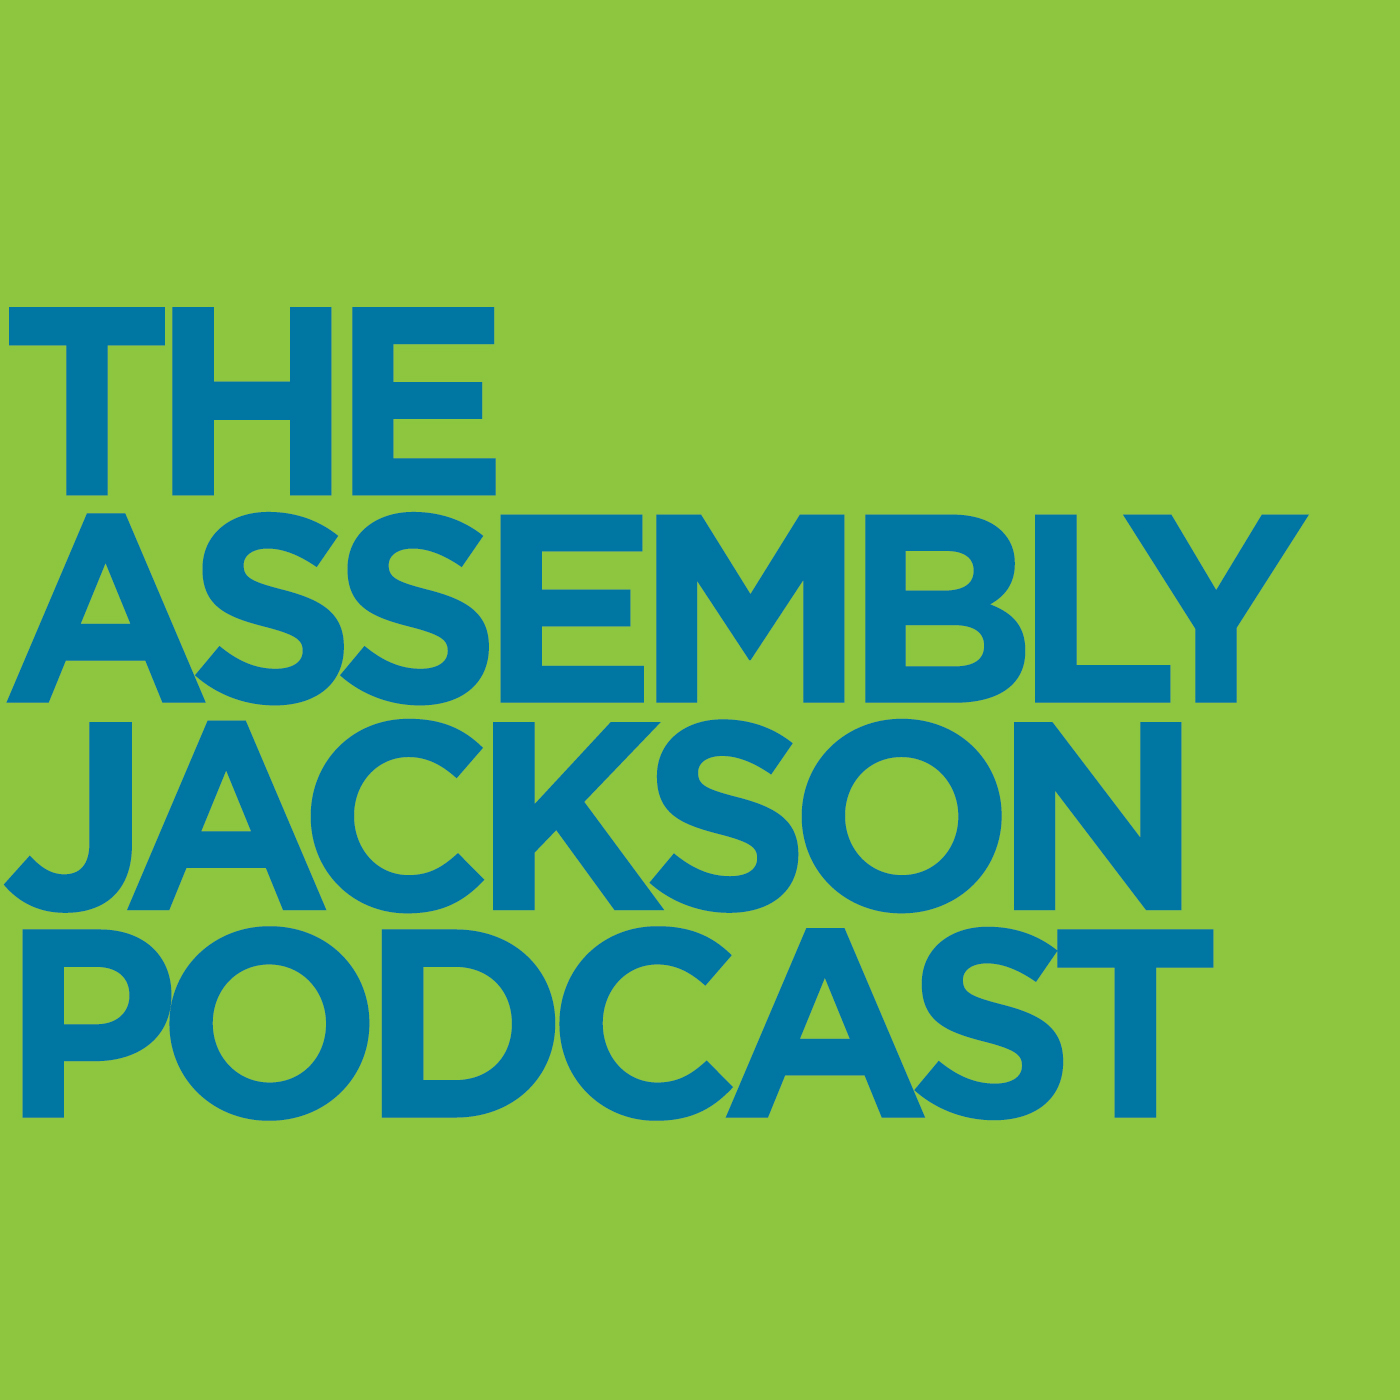 Podcast - The Assembly of Jackson, an Assemblies of God (AG) church